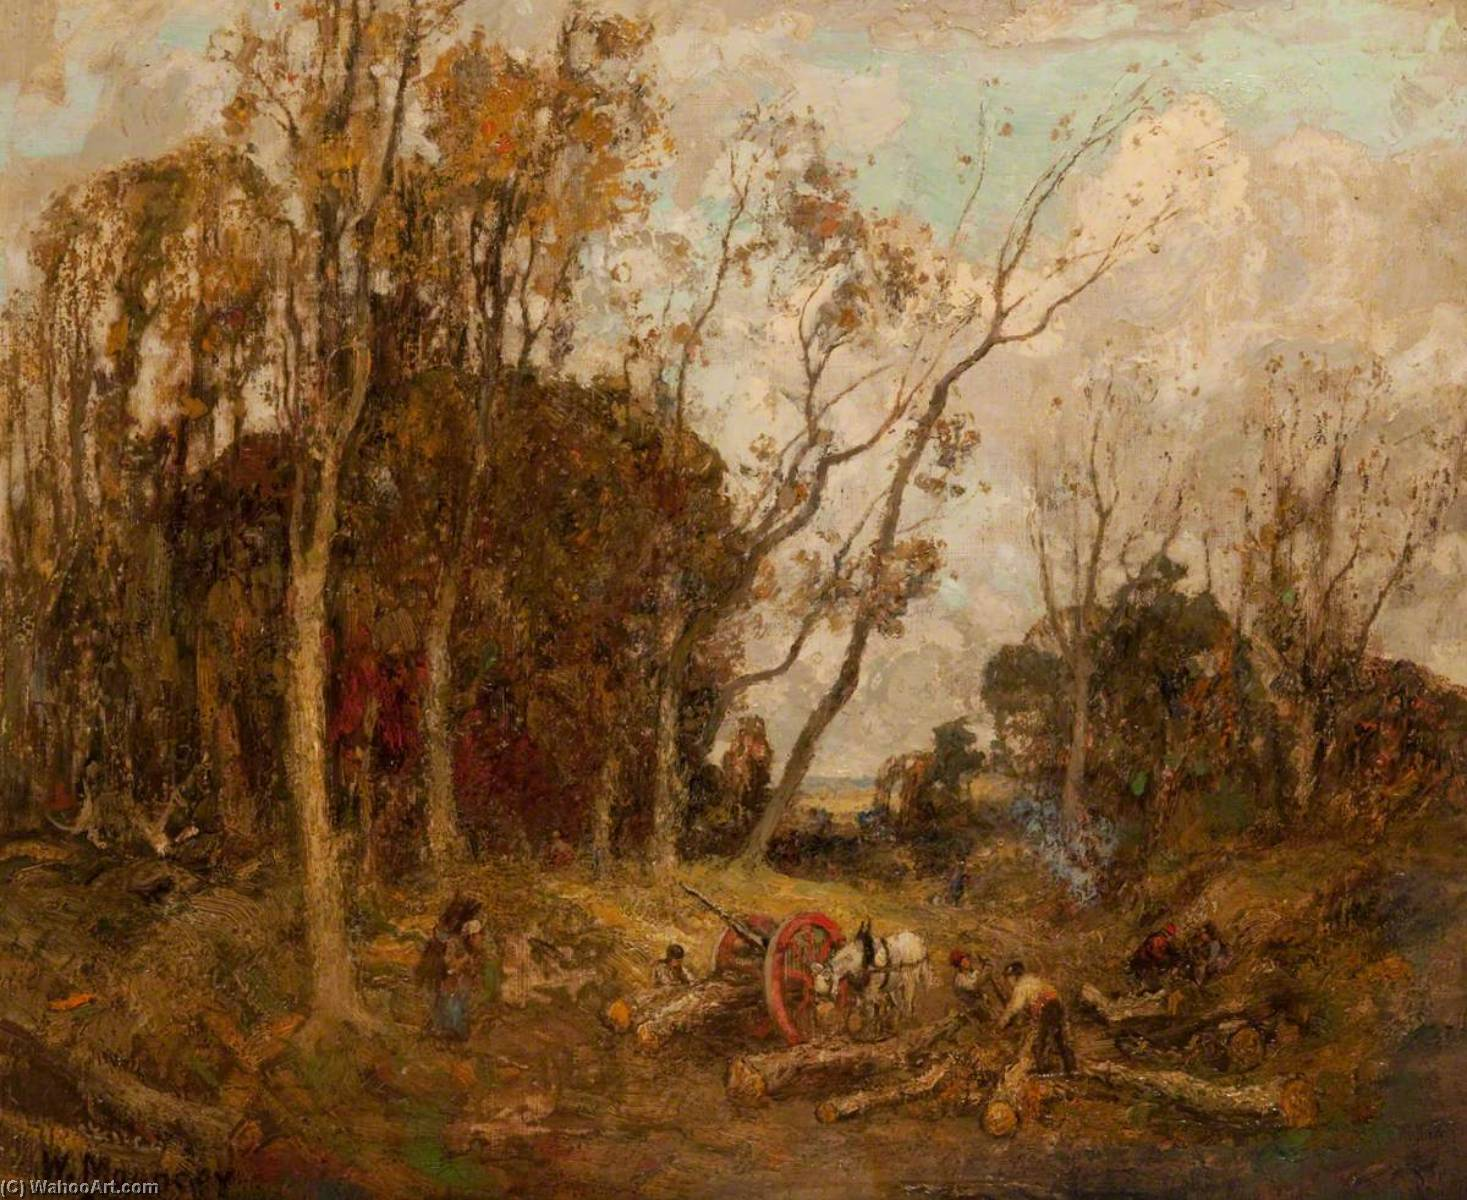 Carting Timber, 1888 by William Mouncey | Oil Painting | WahooArt.com